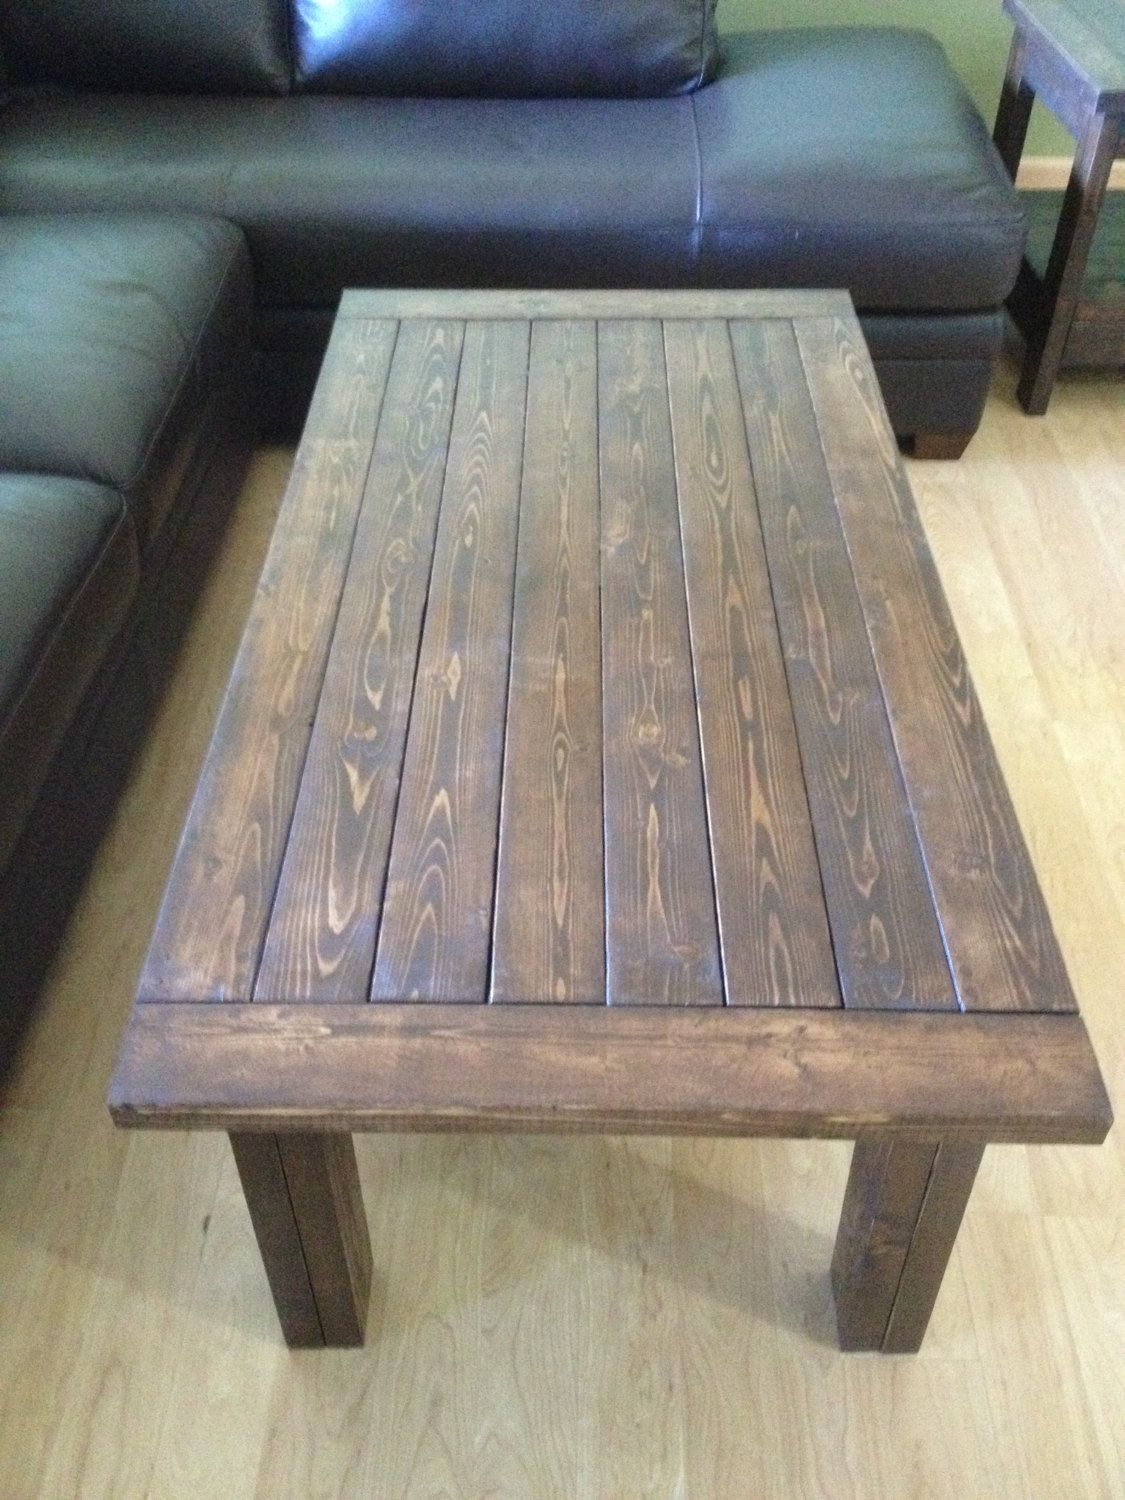 Rustic handmade coffee table with breadboard ends by waverlywoodwork on etsy https